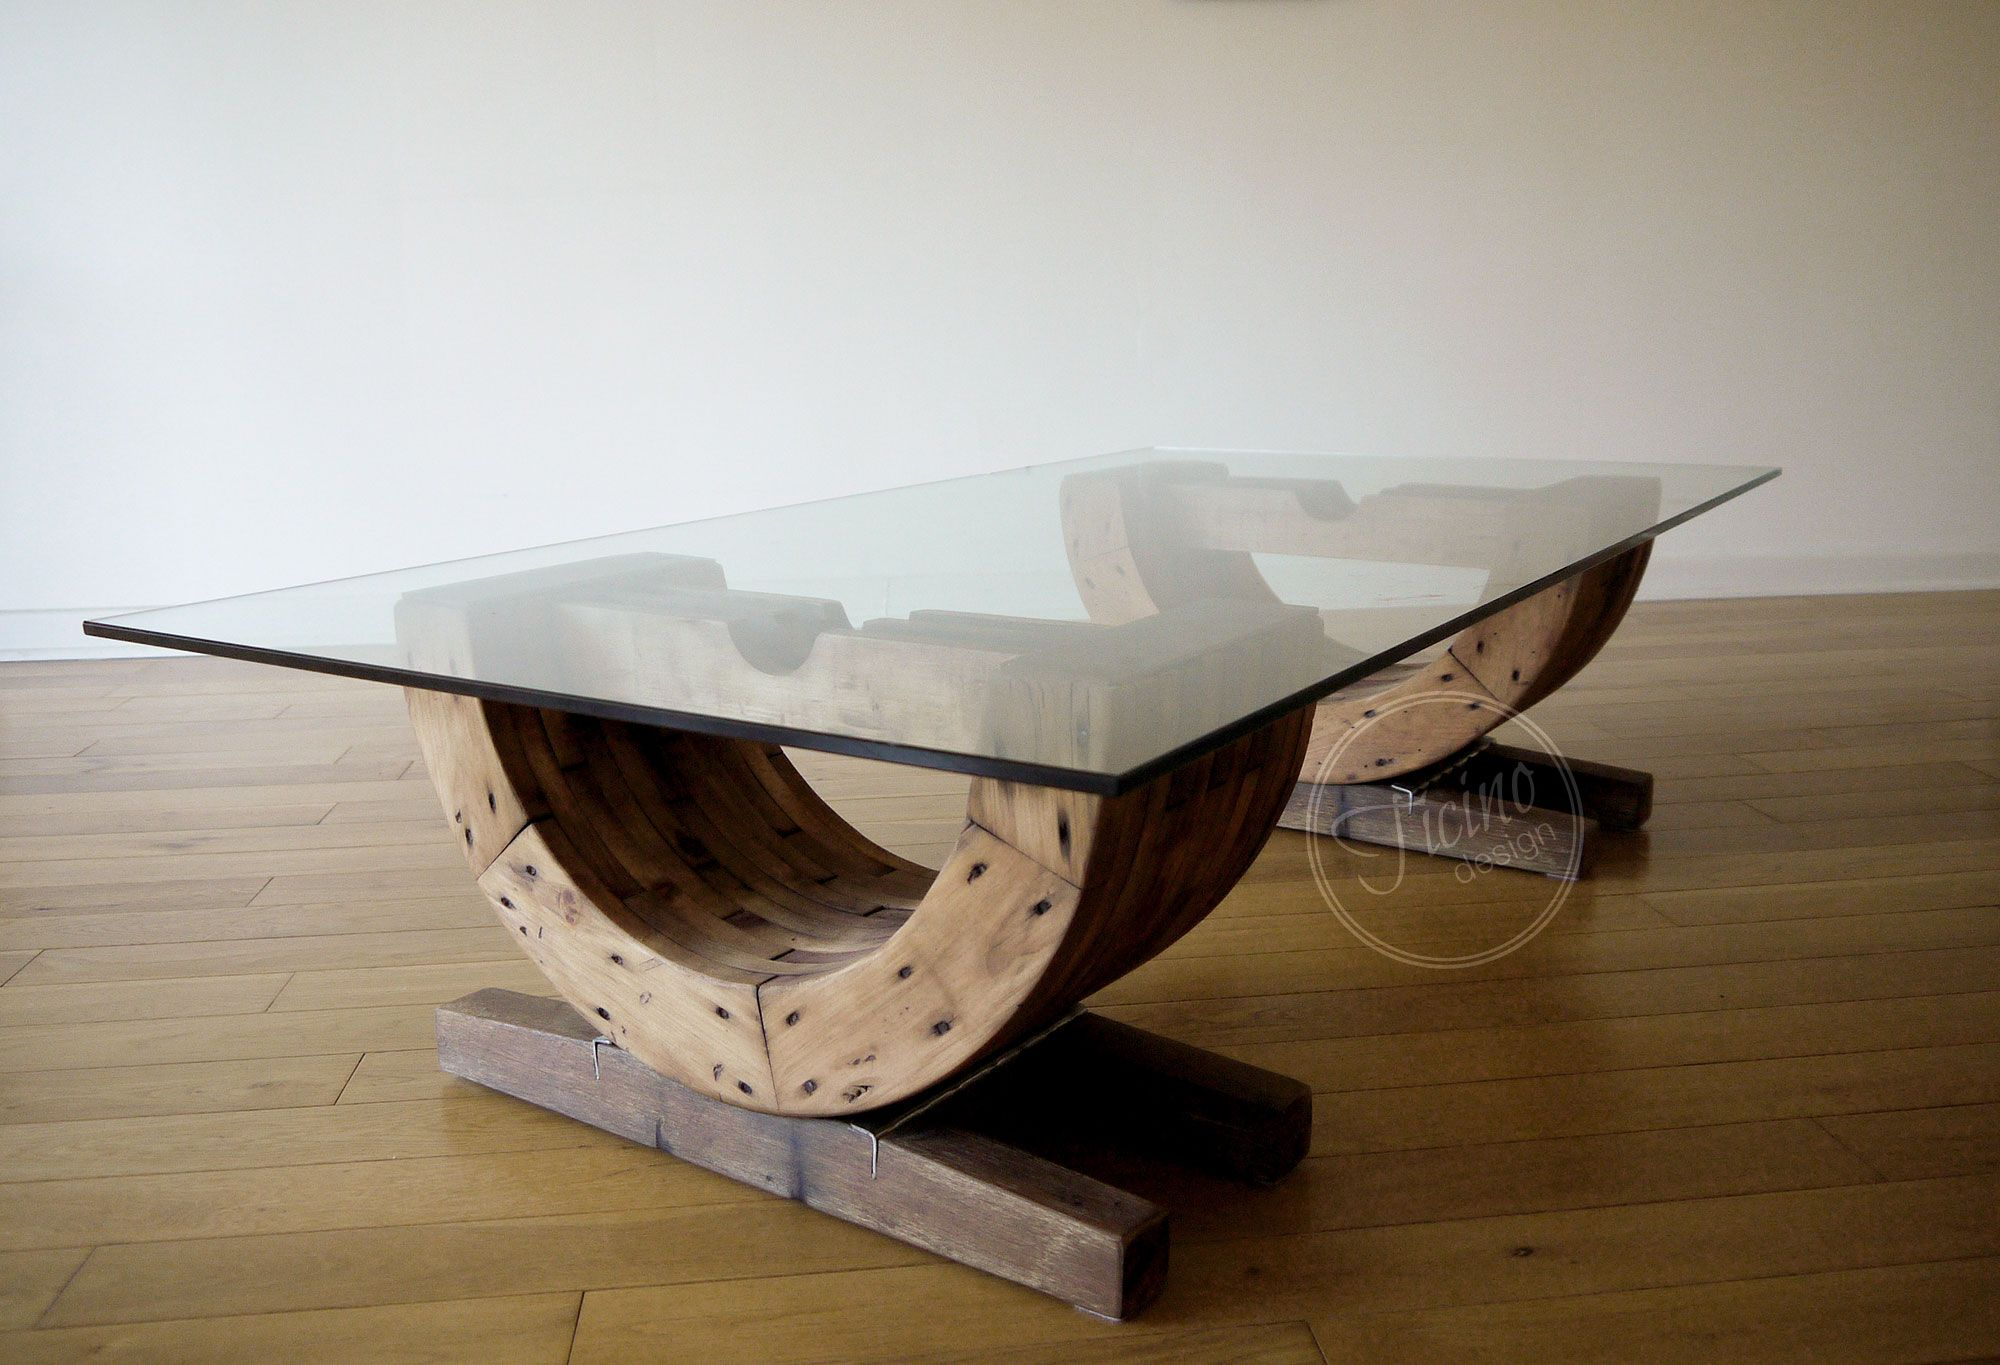 Reclaimed Wood Coffee Table Unique Furniture Glass Coffee Table Rustic Coffee Table Reclaimed Wood Coffee Table Coffee Table Wood Rustic Coffee Tables [ 1365 x 2000 Pixel ]